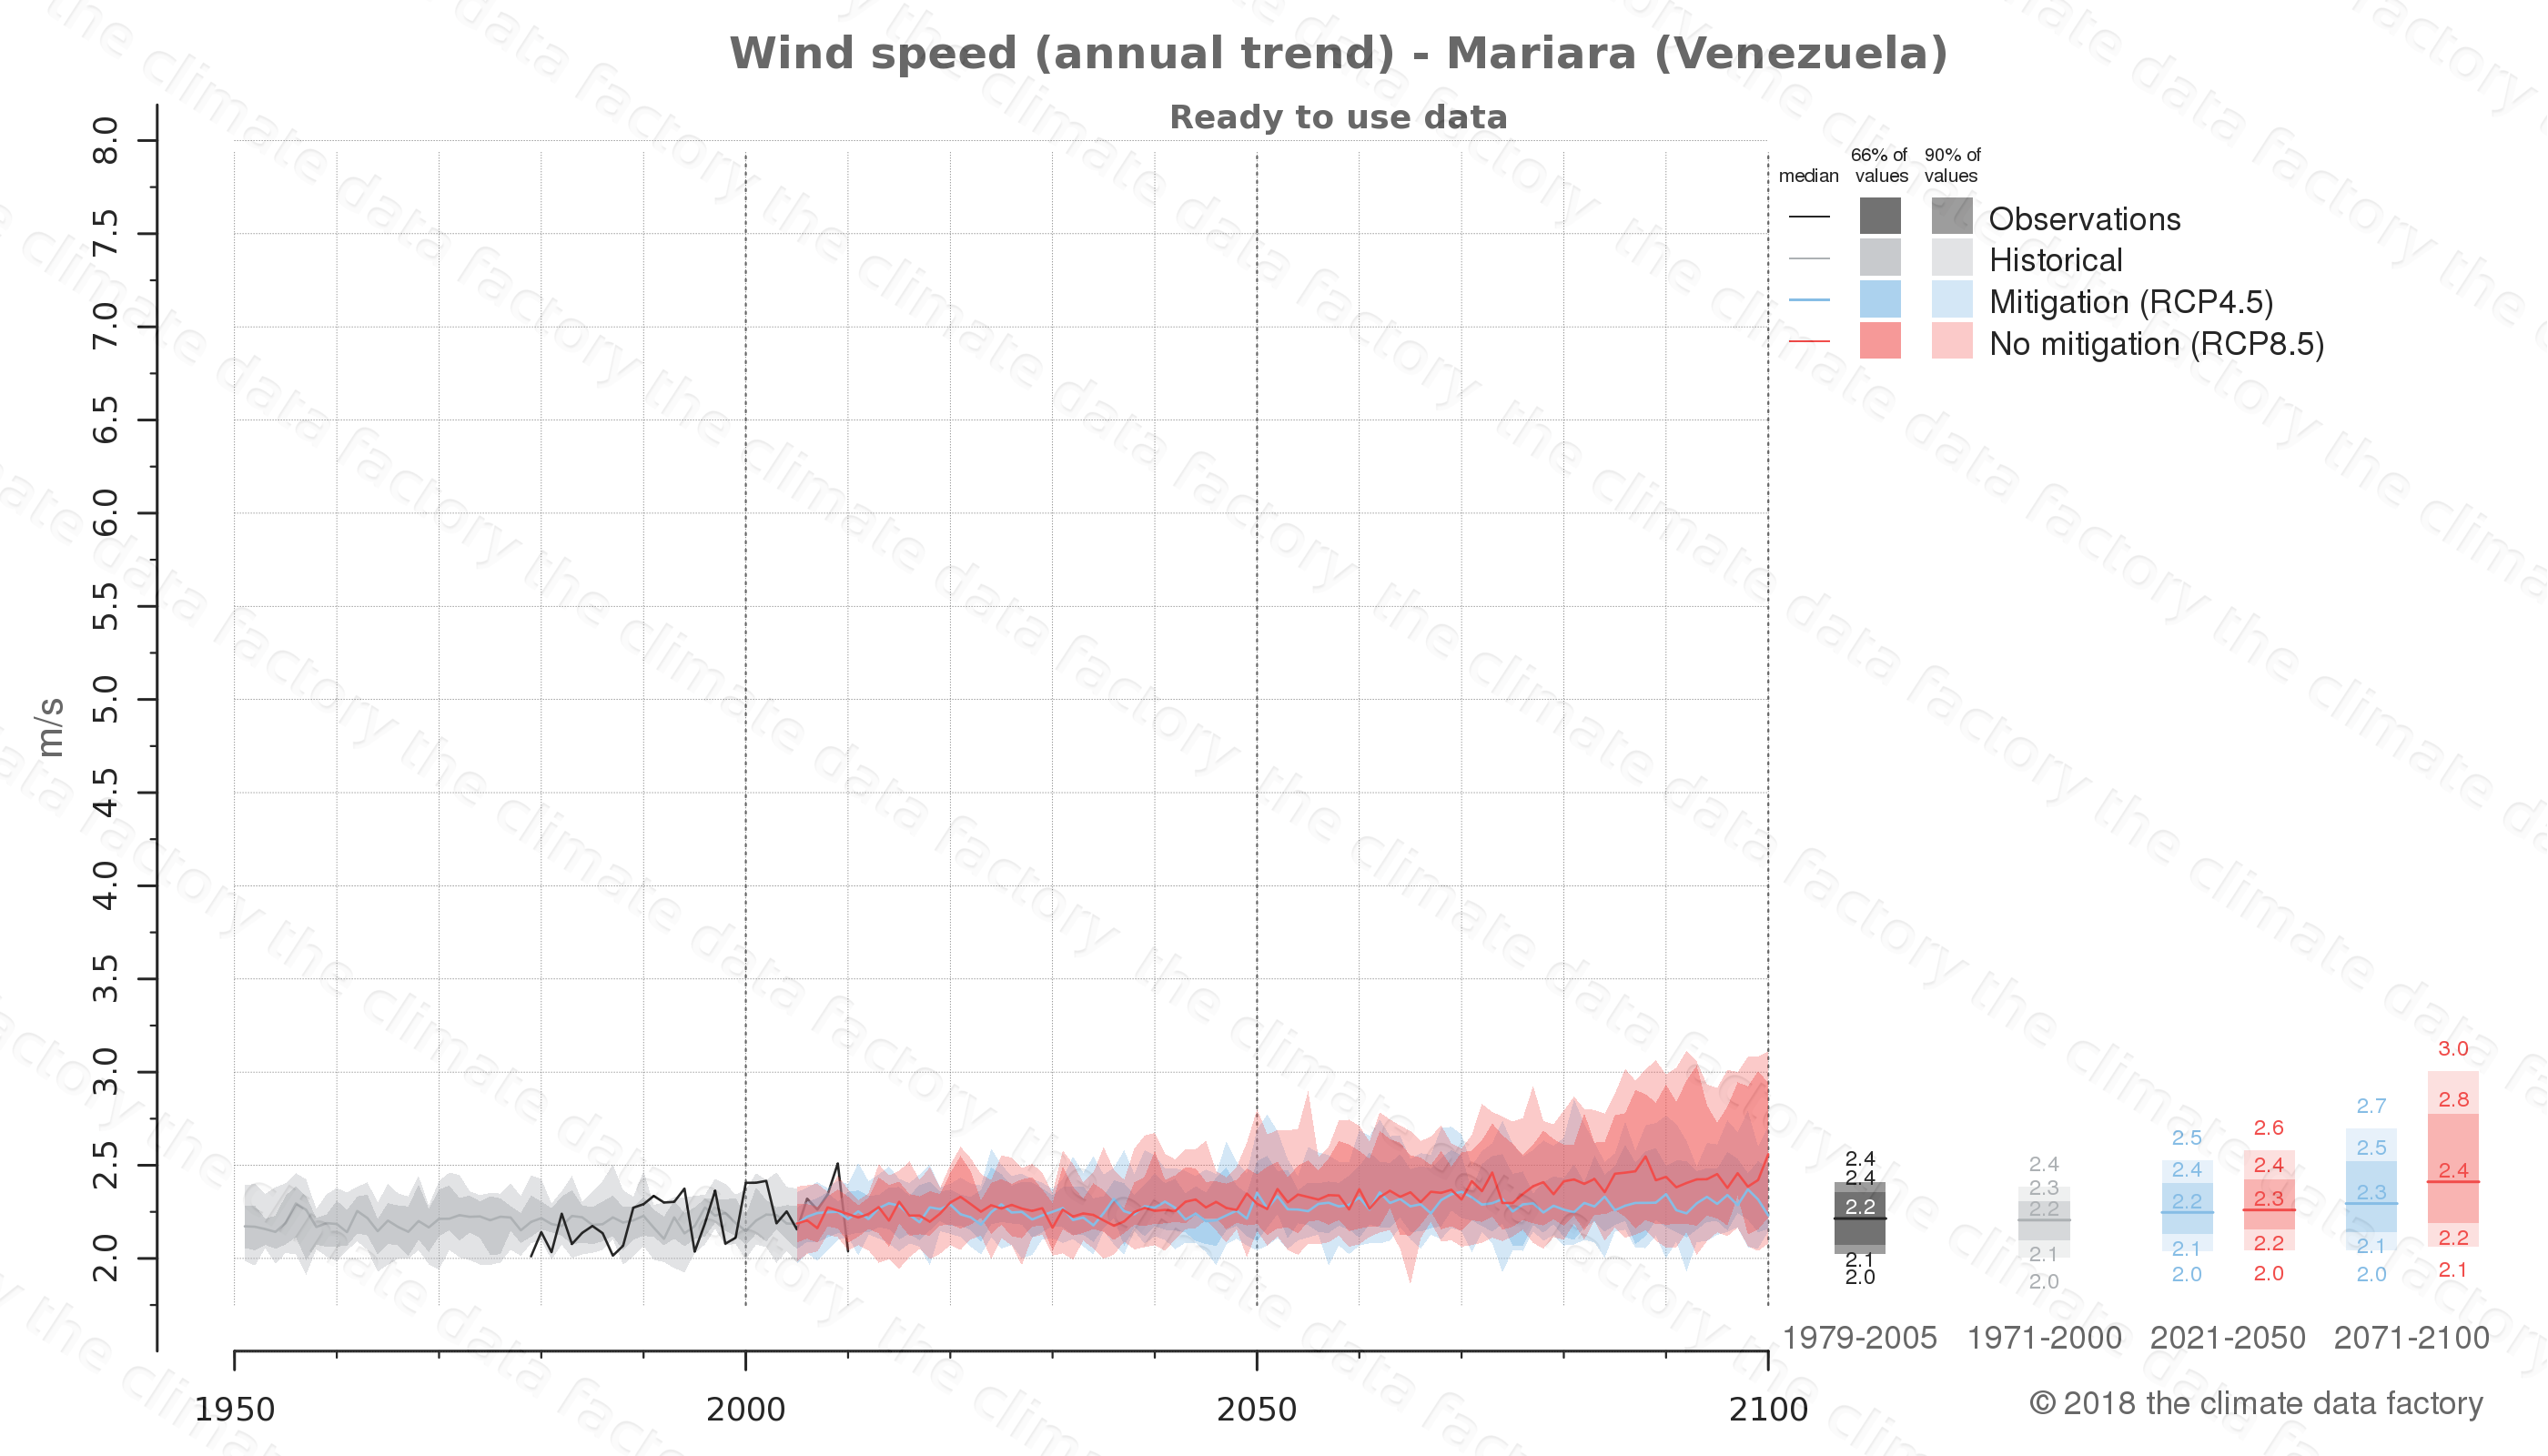 climate change data policy adaptation climate graph city data wind-speed mariara venezuela